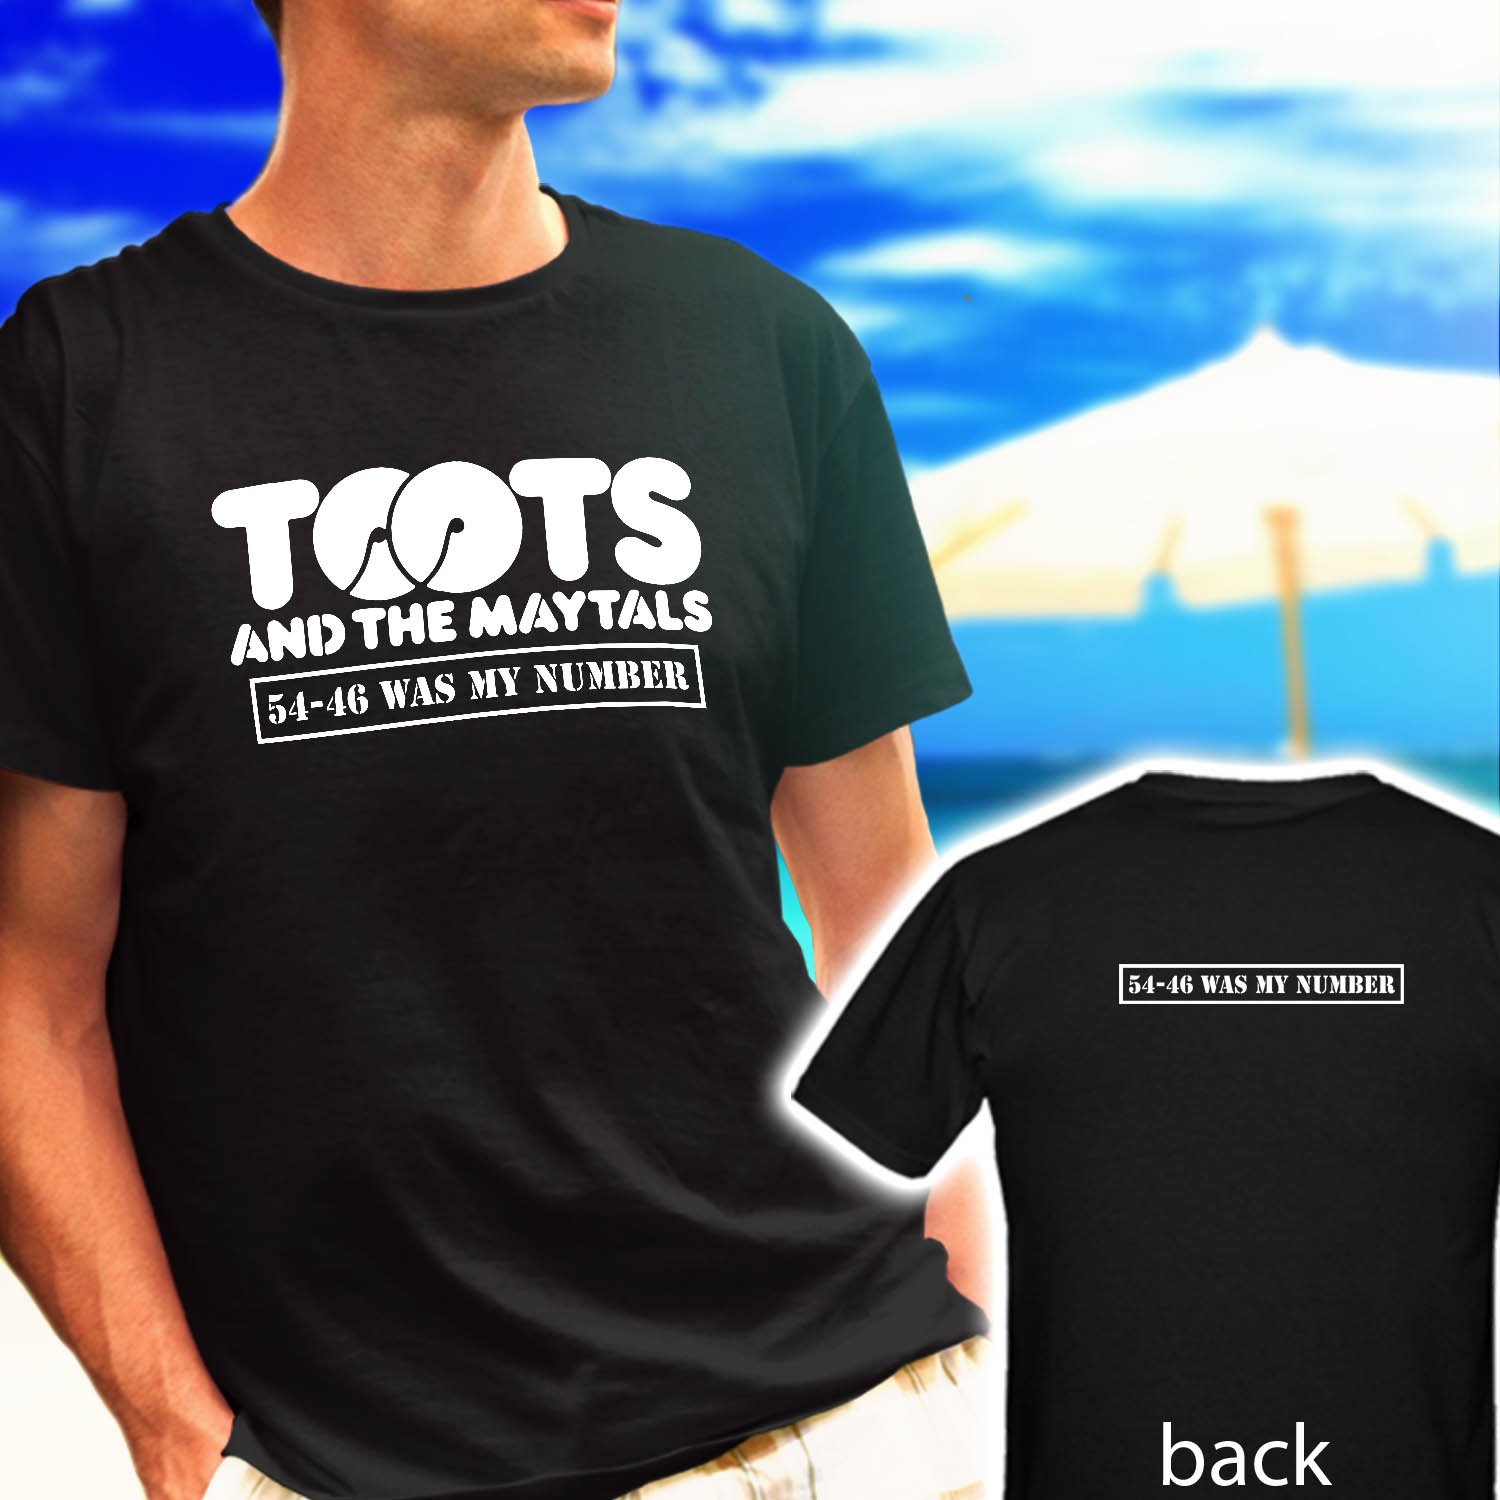 Toots and The Maytals Reggae Studio 54-46 was my number black t-shirt tshirt shirts tee SIZE M